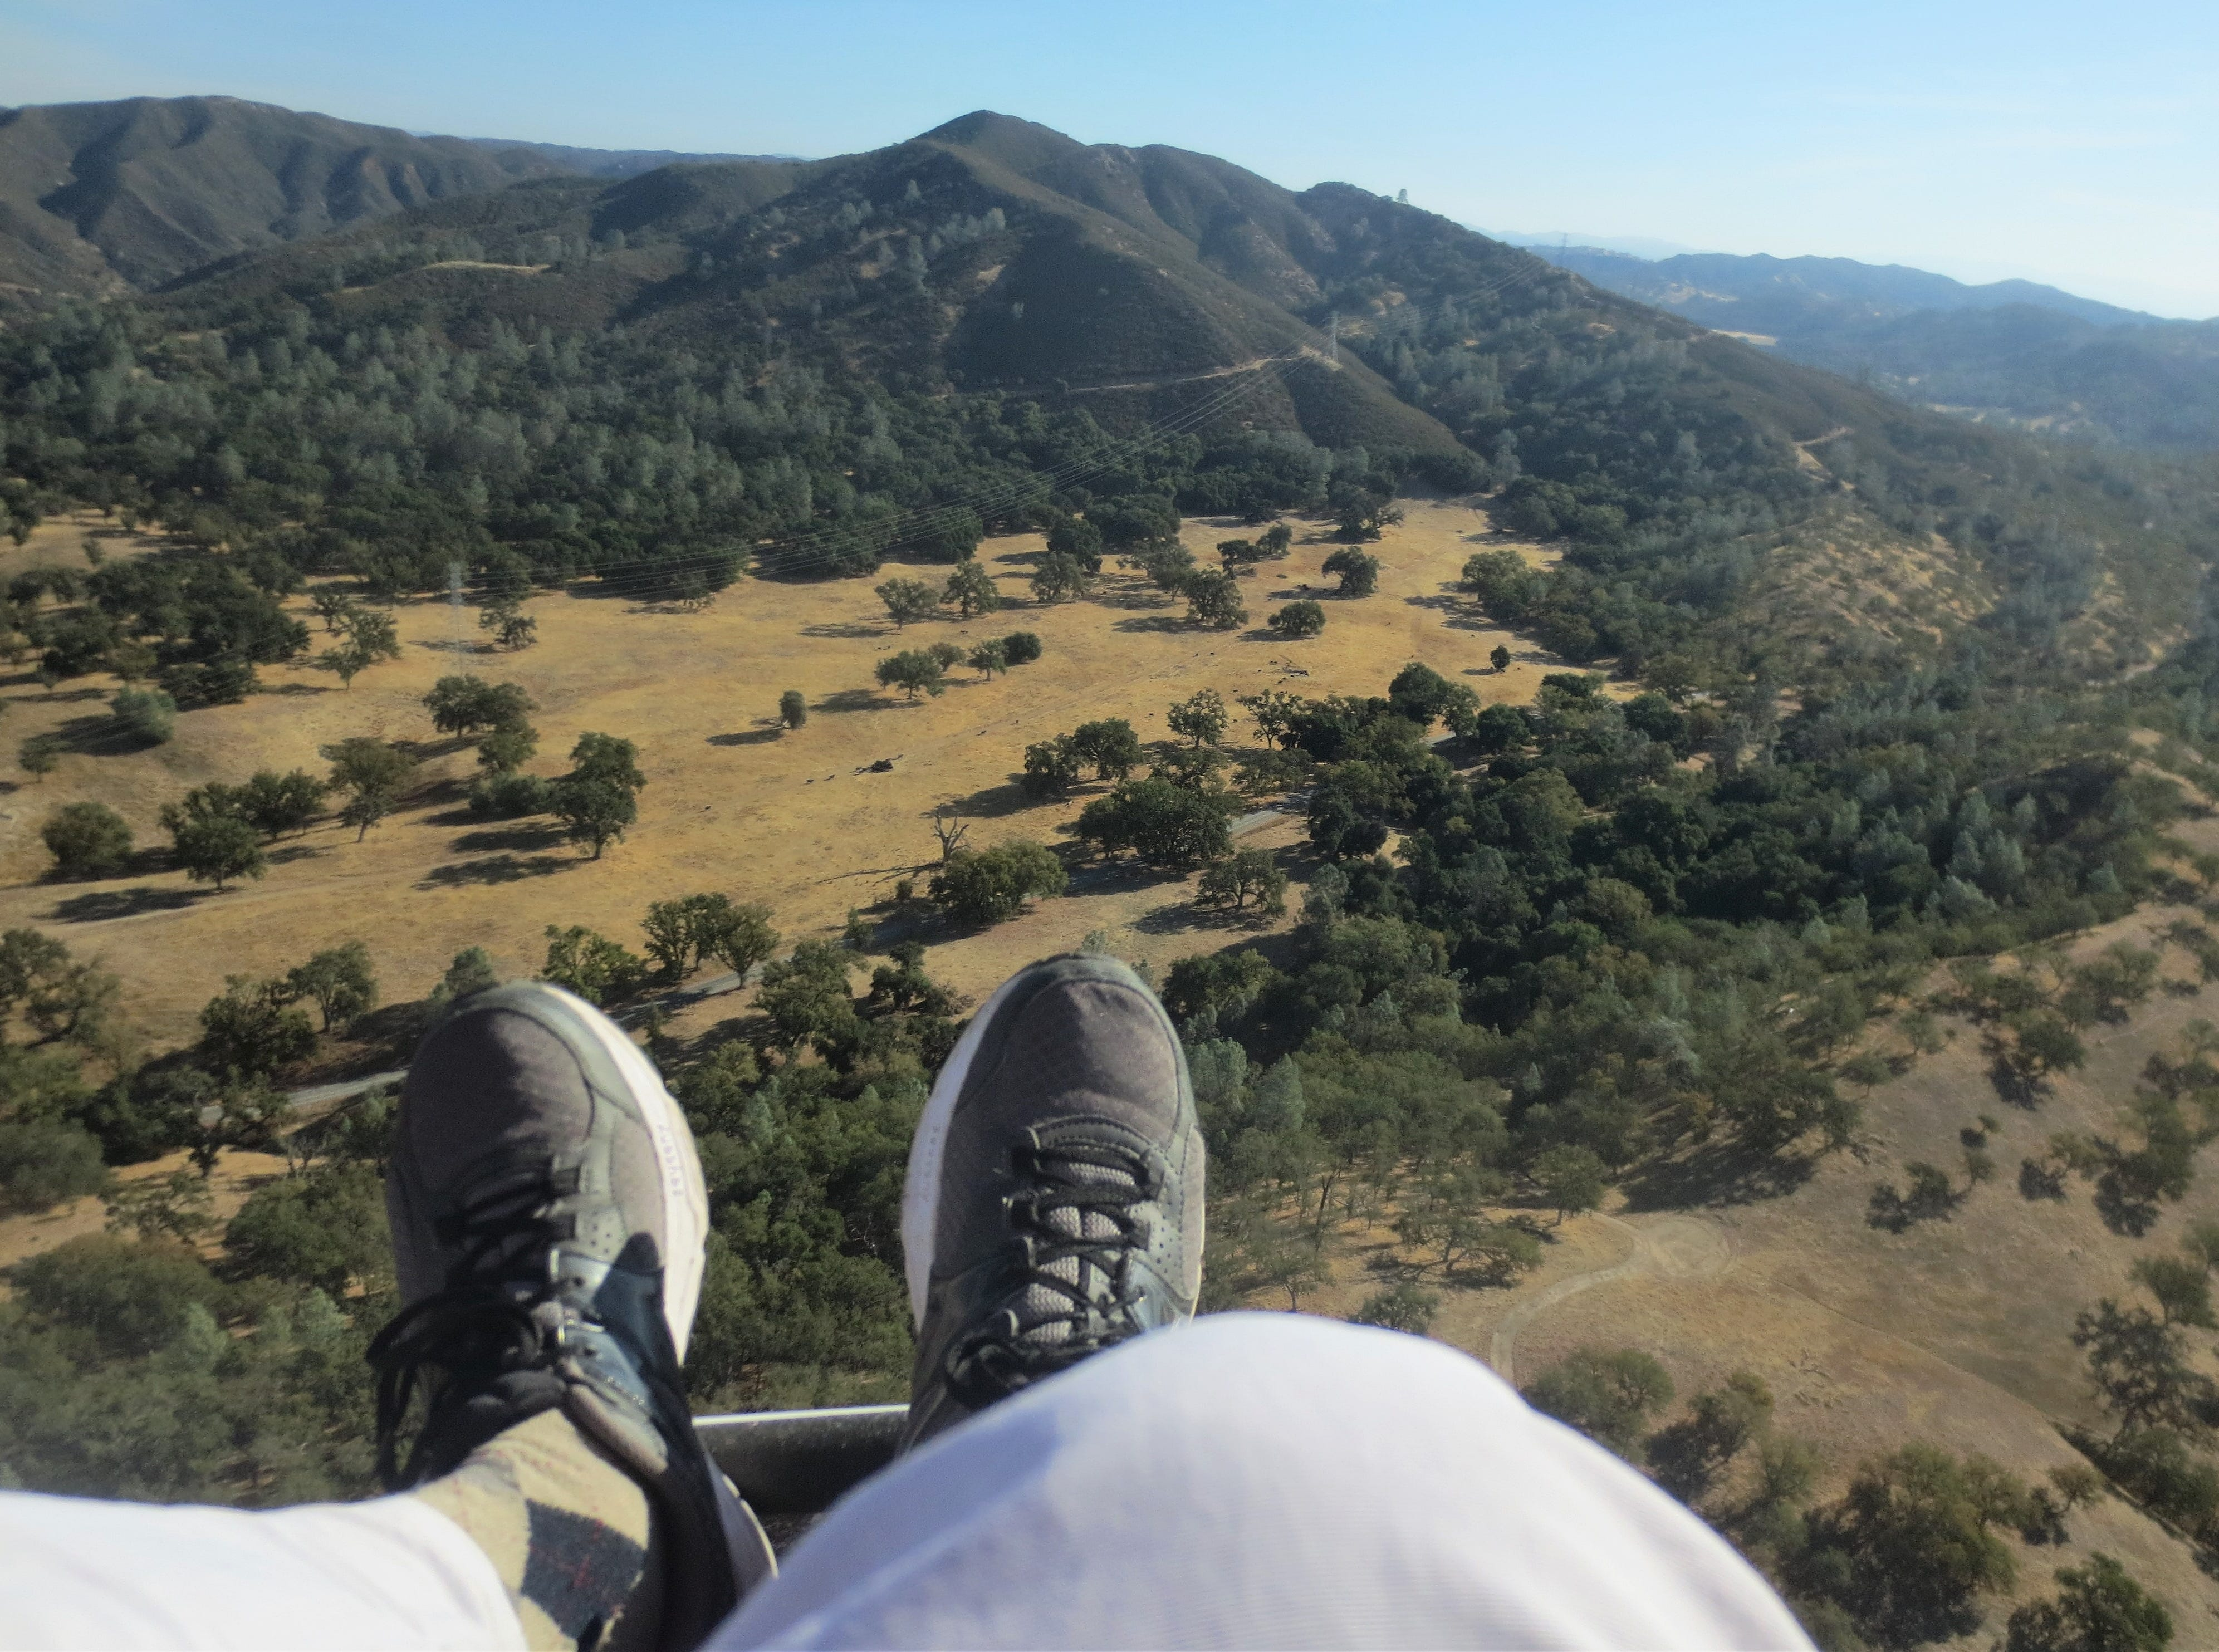 The view from a paragliding trip over San Luis Obispo County.